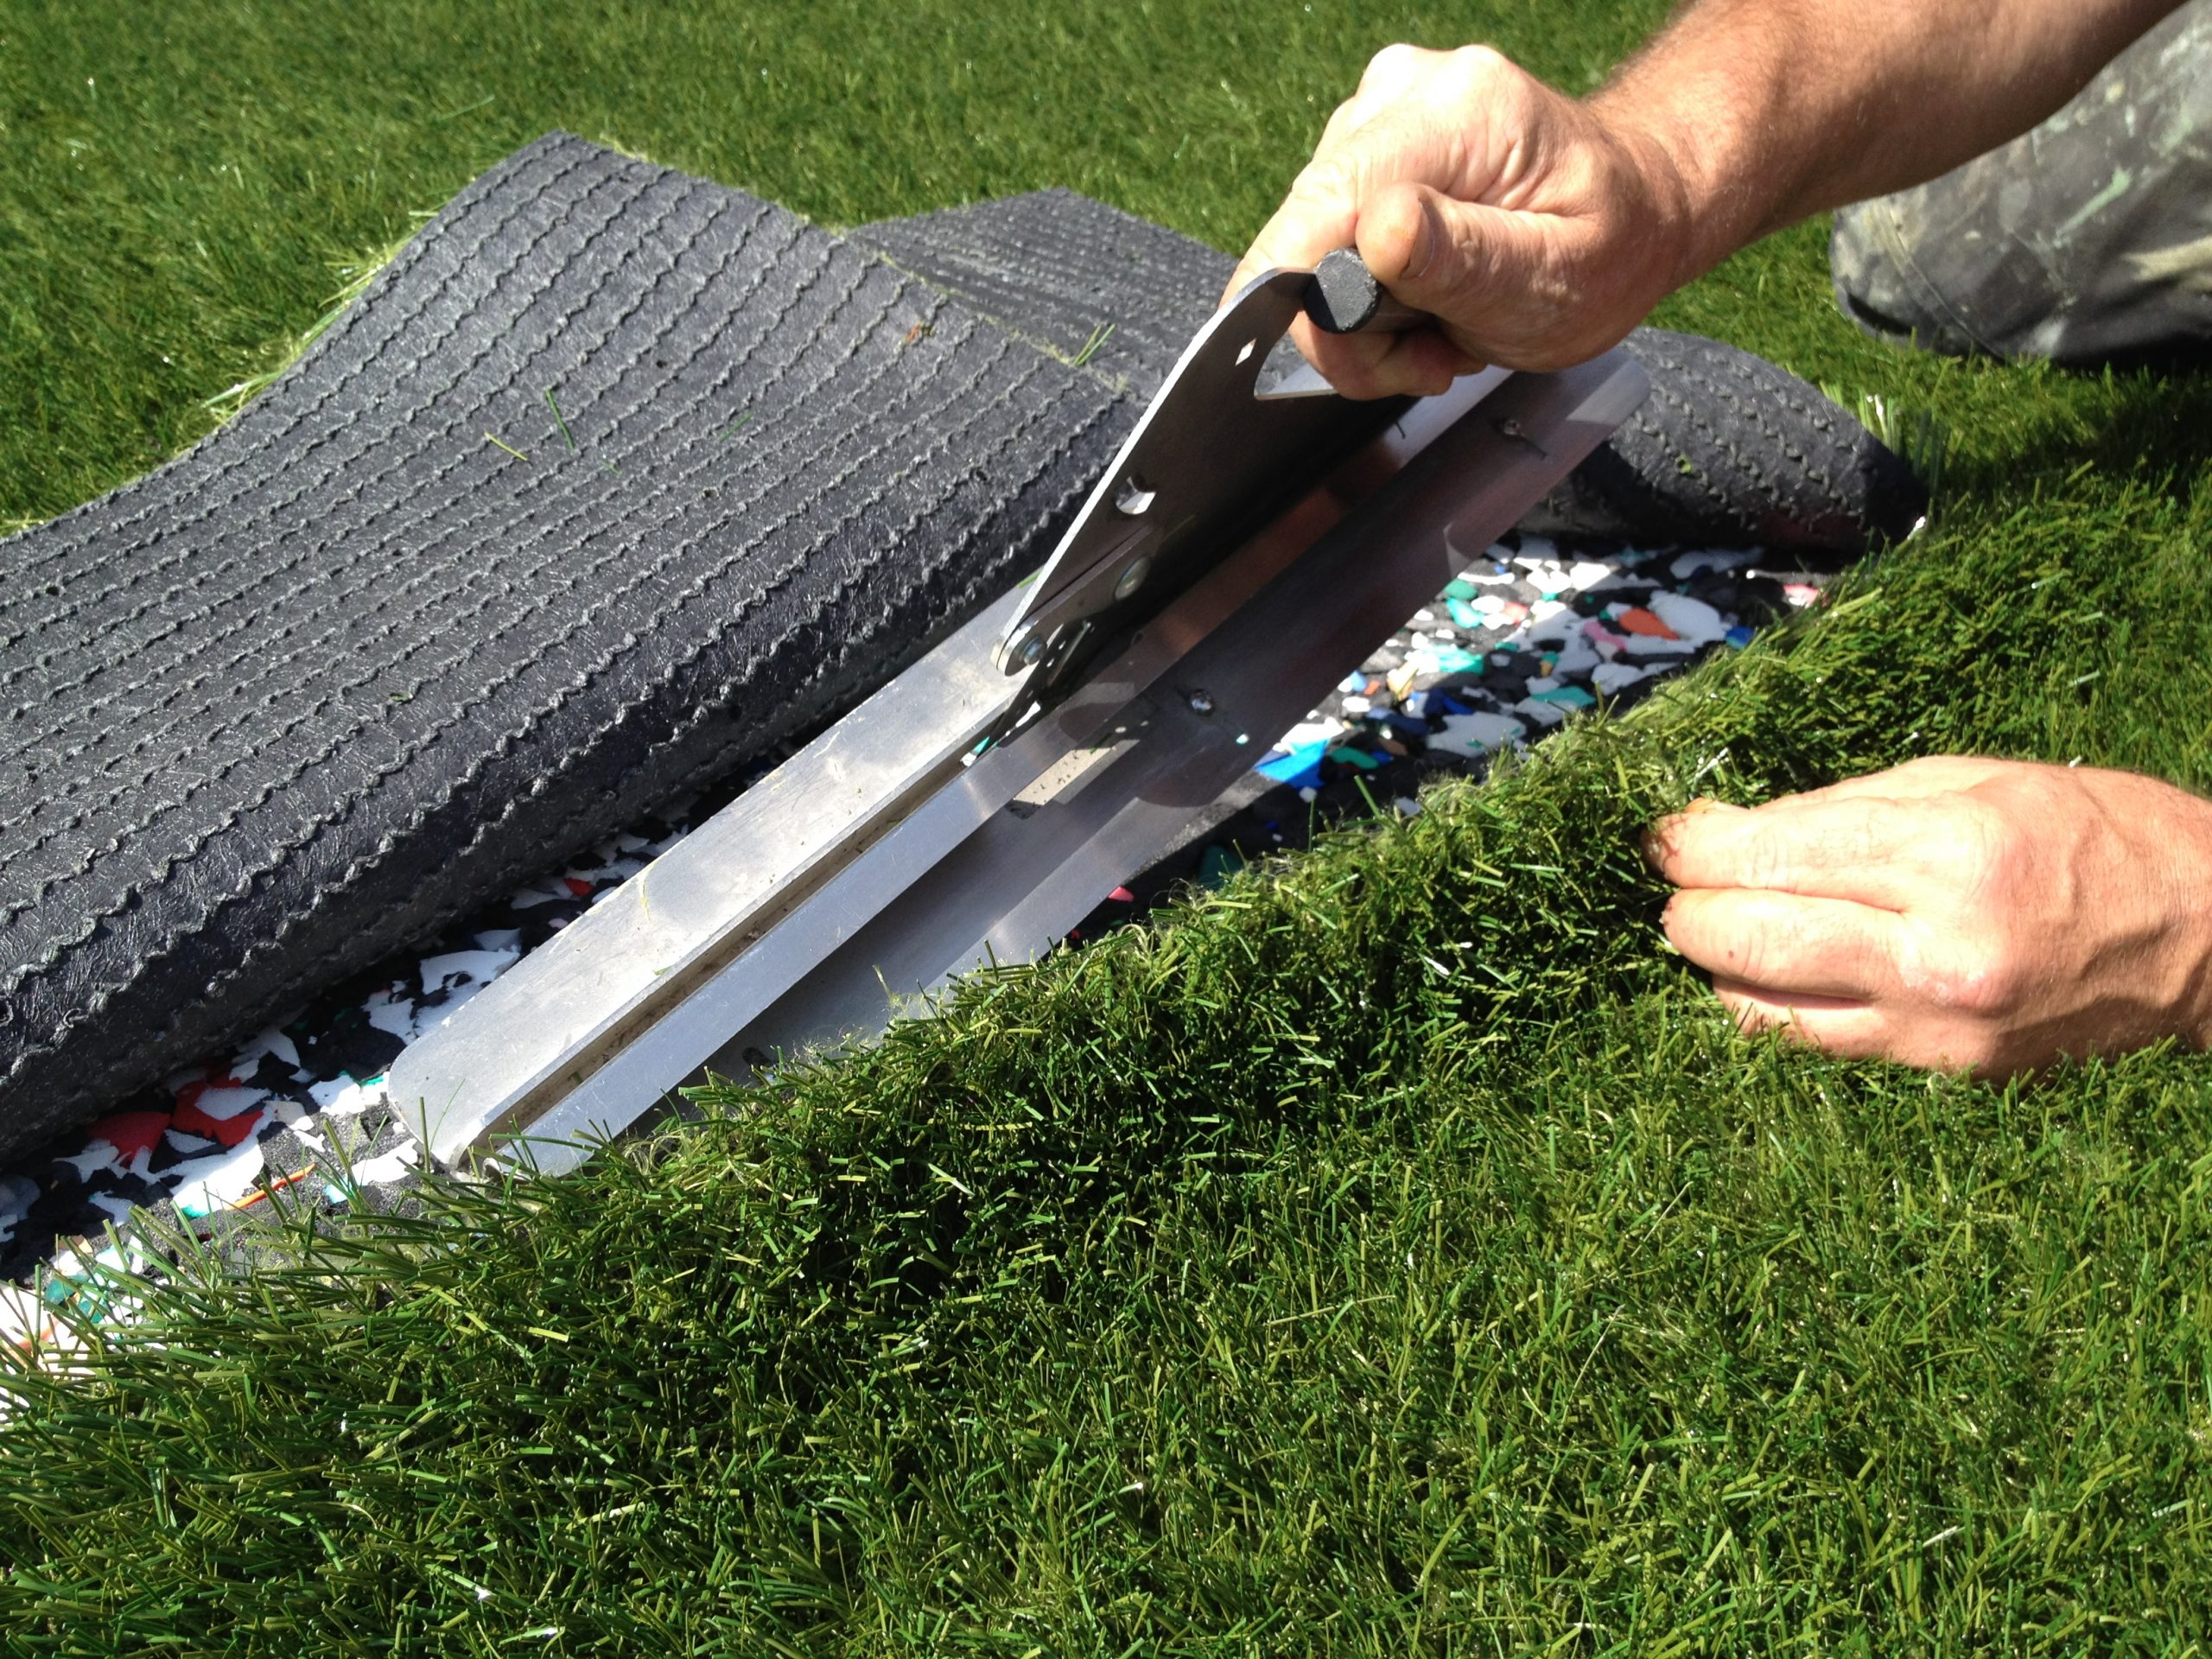 how to cut artificial grass